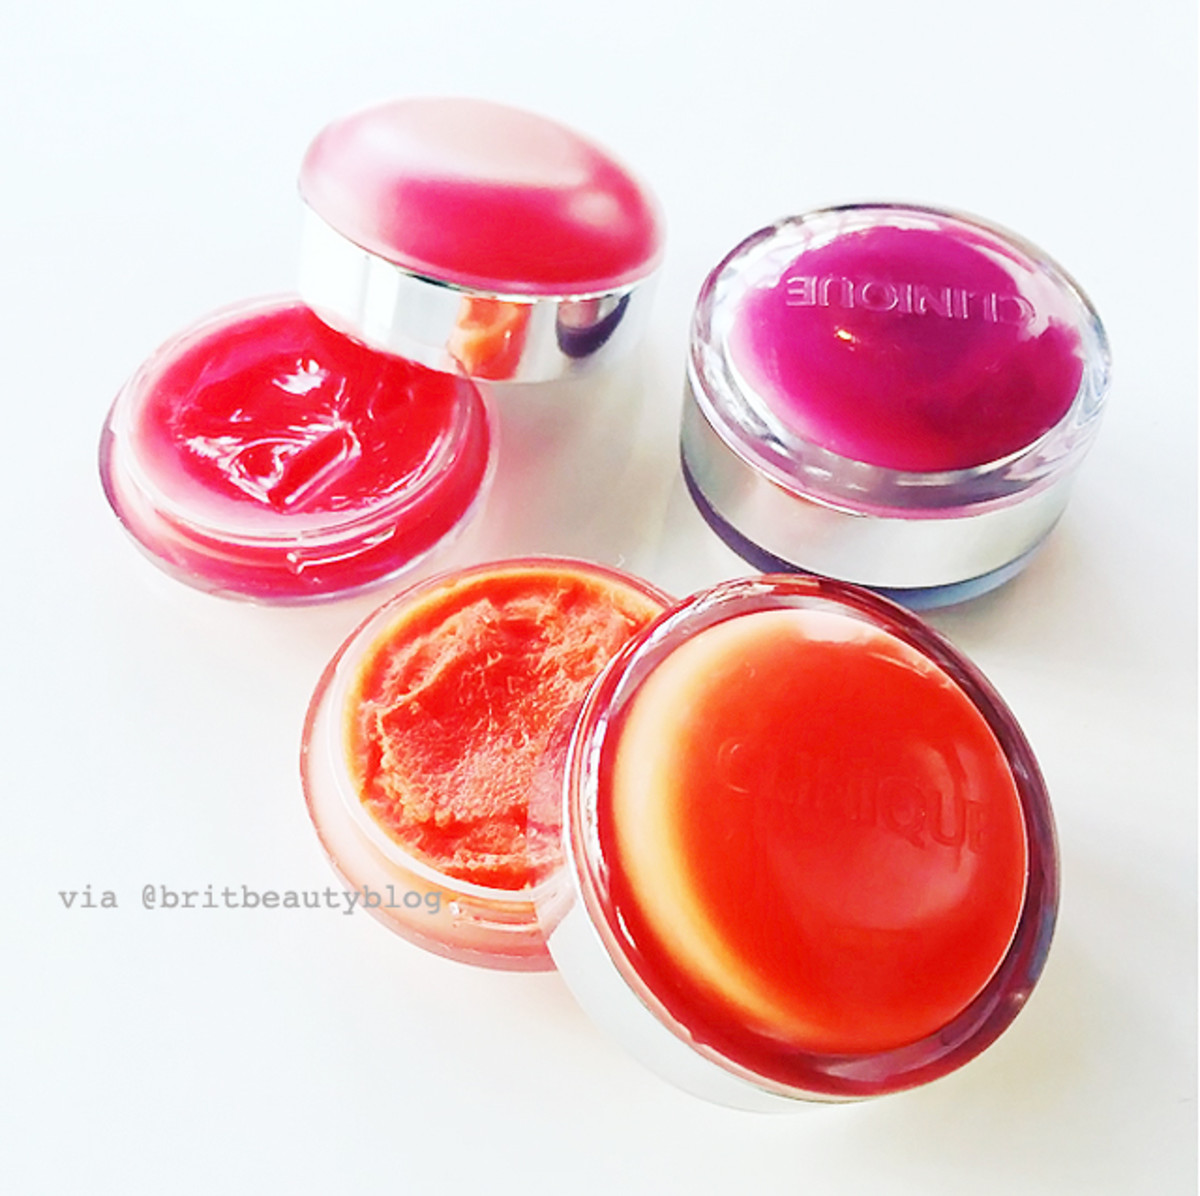 Clinique Sweet Pop Sugar Lip Balm & Tints lip scrub and balm duos_via britishbeautyblogger